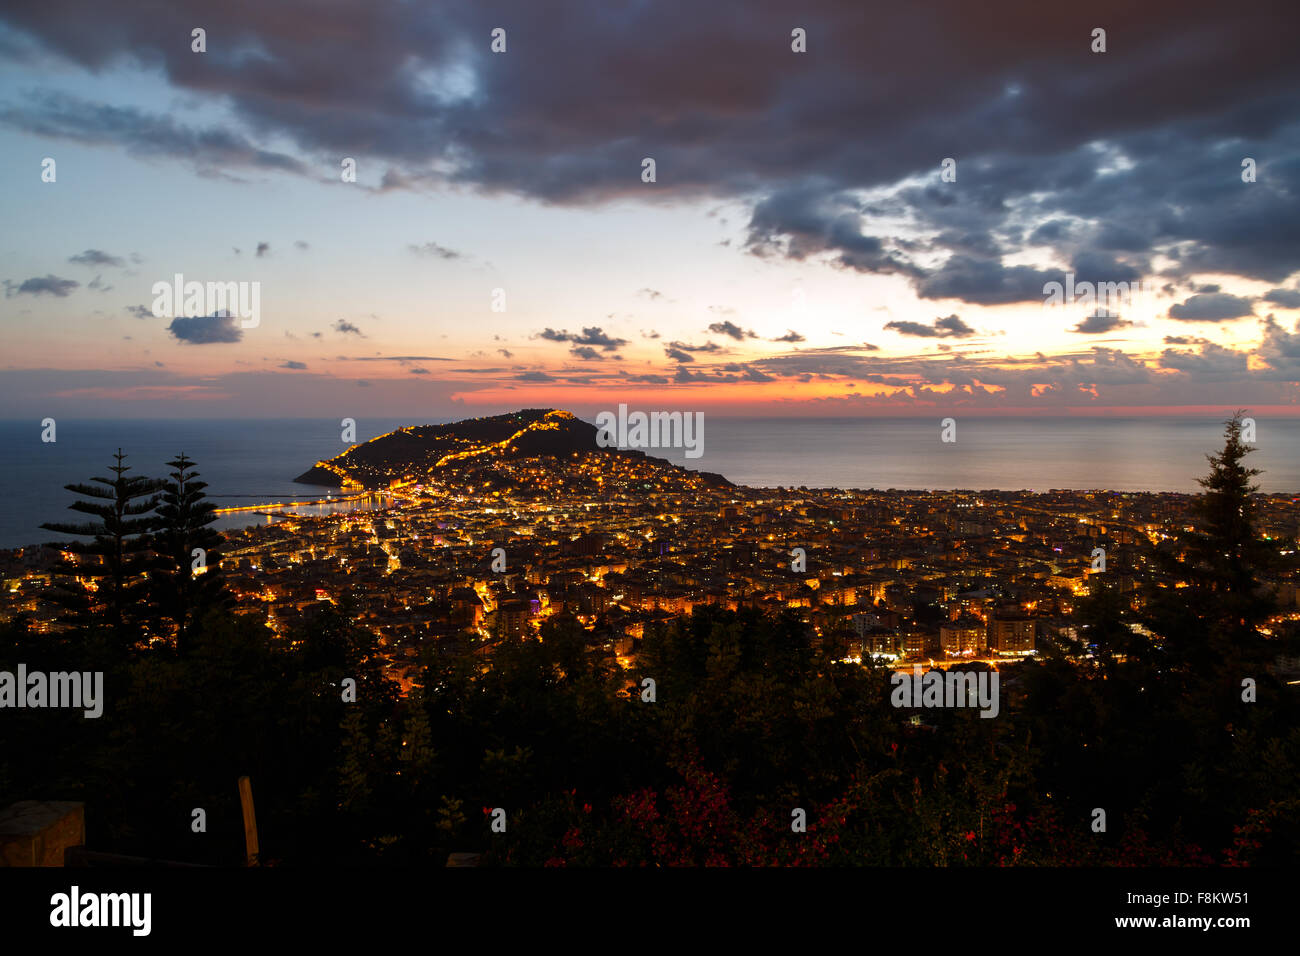 Night view of peninsula in Antalya, Alanya Castle with lighting in blue hours. - Stock Image